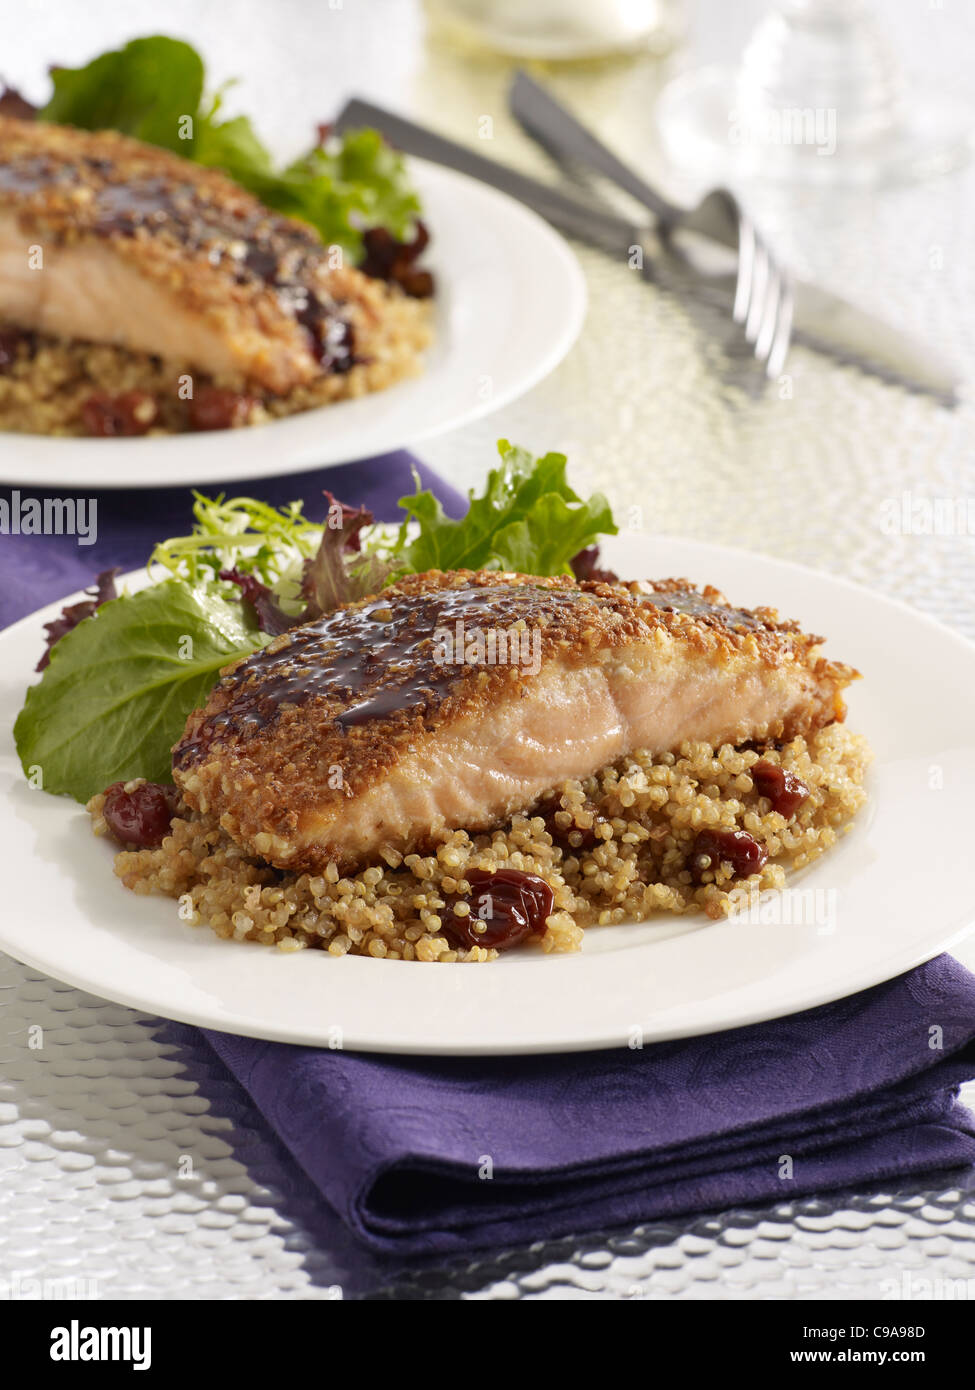 Cherry salmon fillet dinner over grains served with a leafy green salad - Stock Image